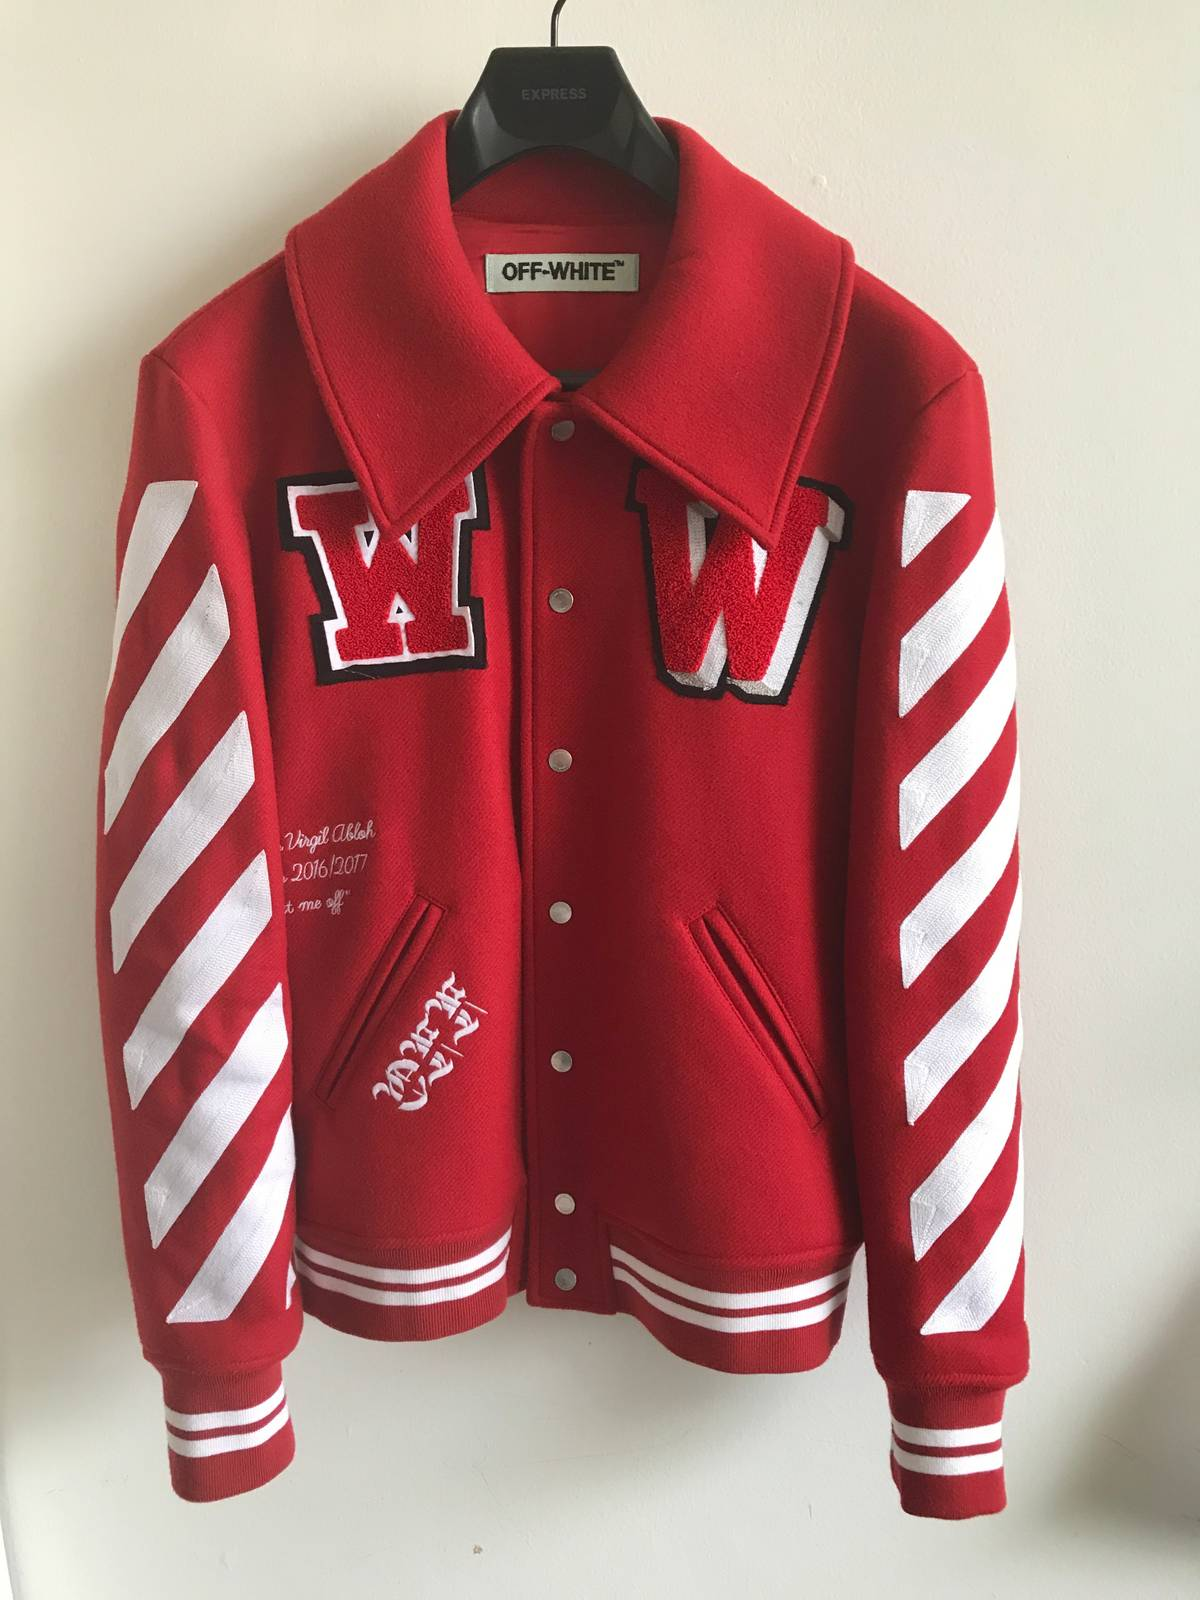 d6957a1c4199 Off-White Off-White Embroidered Virgin Wool-Blend Varsity Jacket Size xs -  Light Jackets for Sale - Grailed